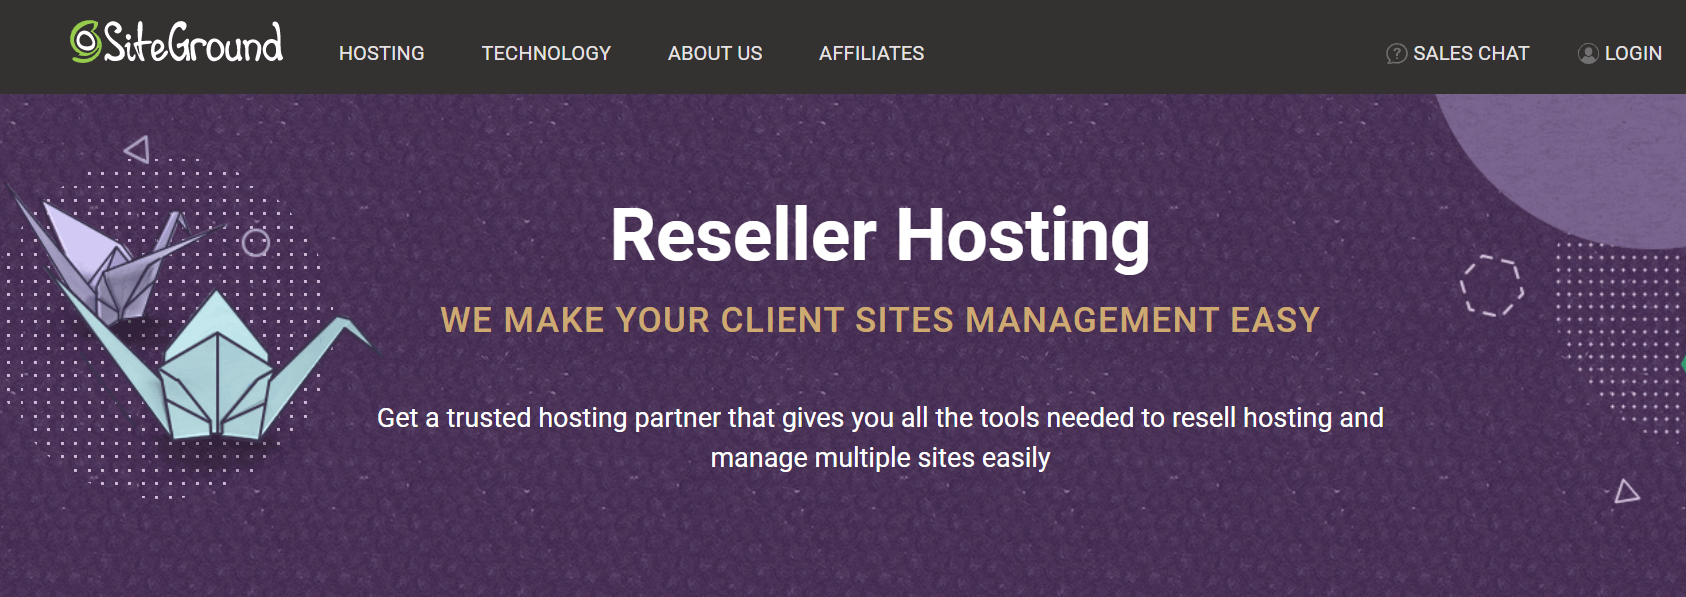 Siteground's reseller hosting page.